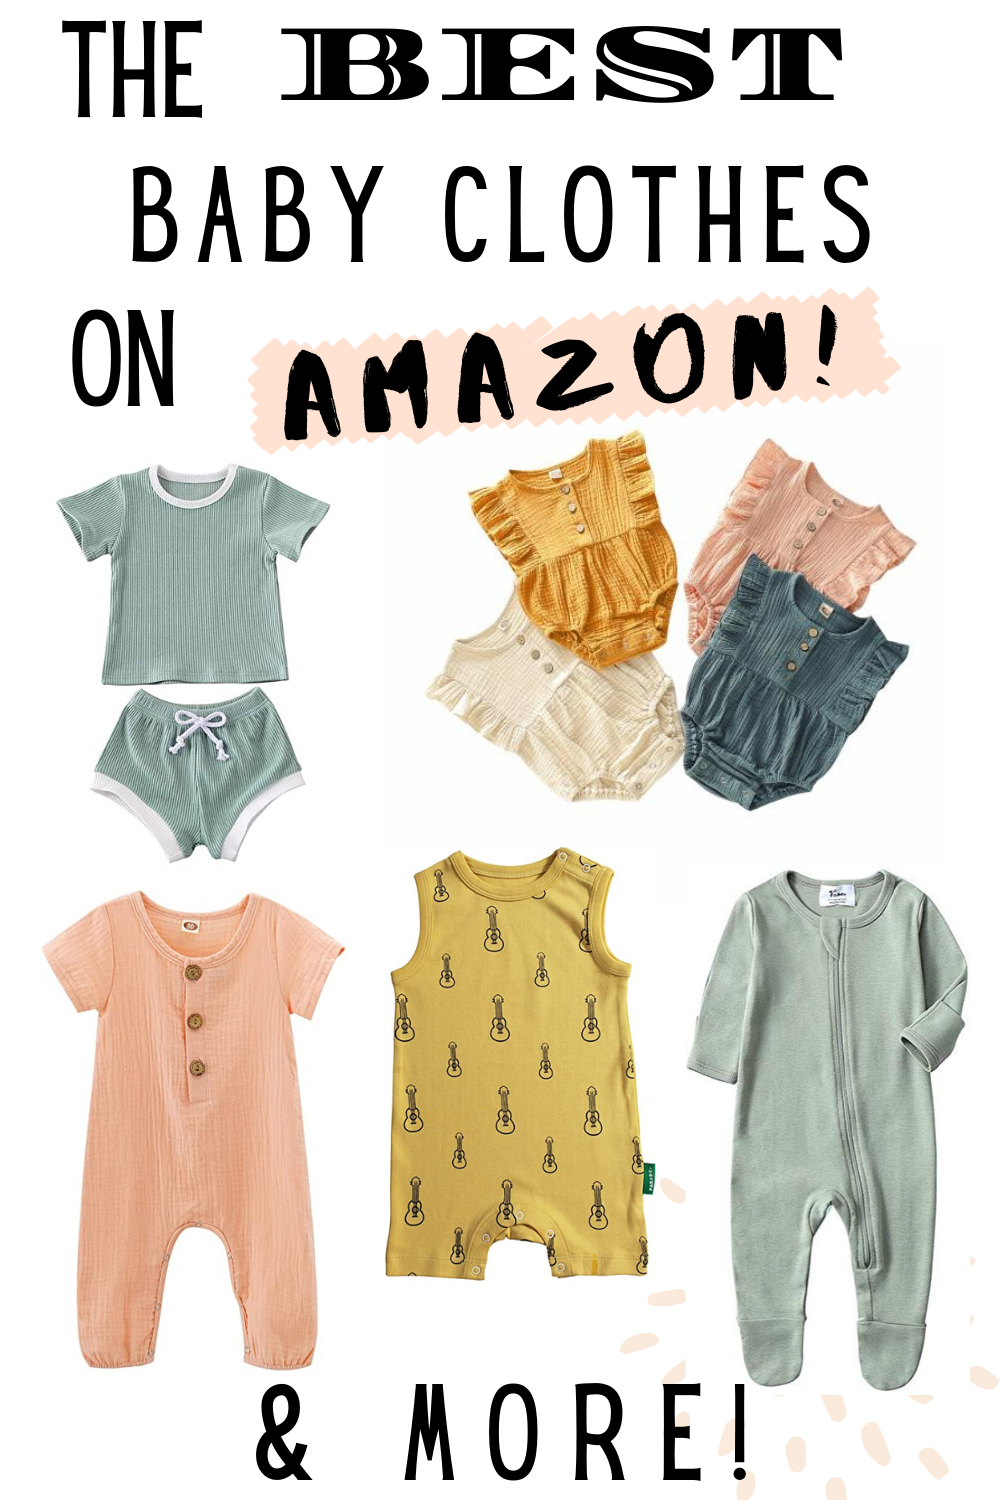 Organic Baby Clothes on Amazon - Cherrington Chatter  Cool baby